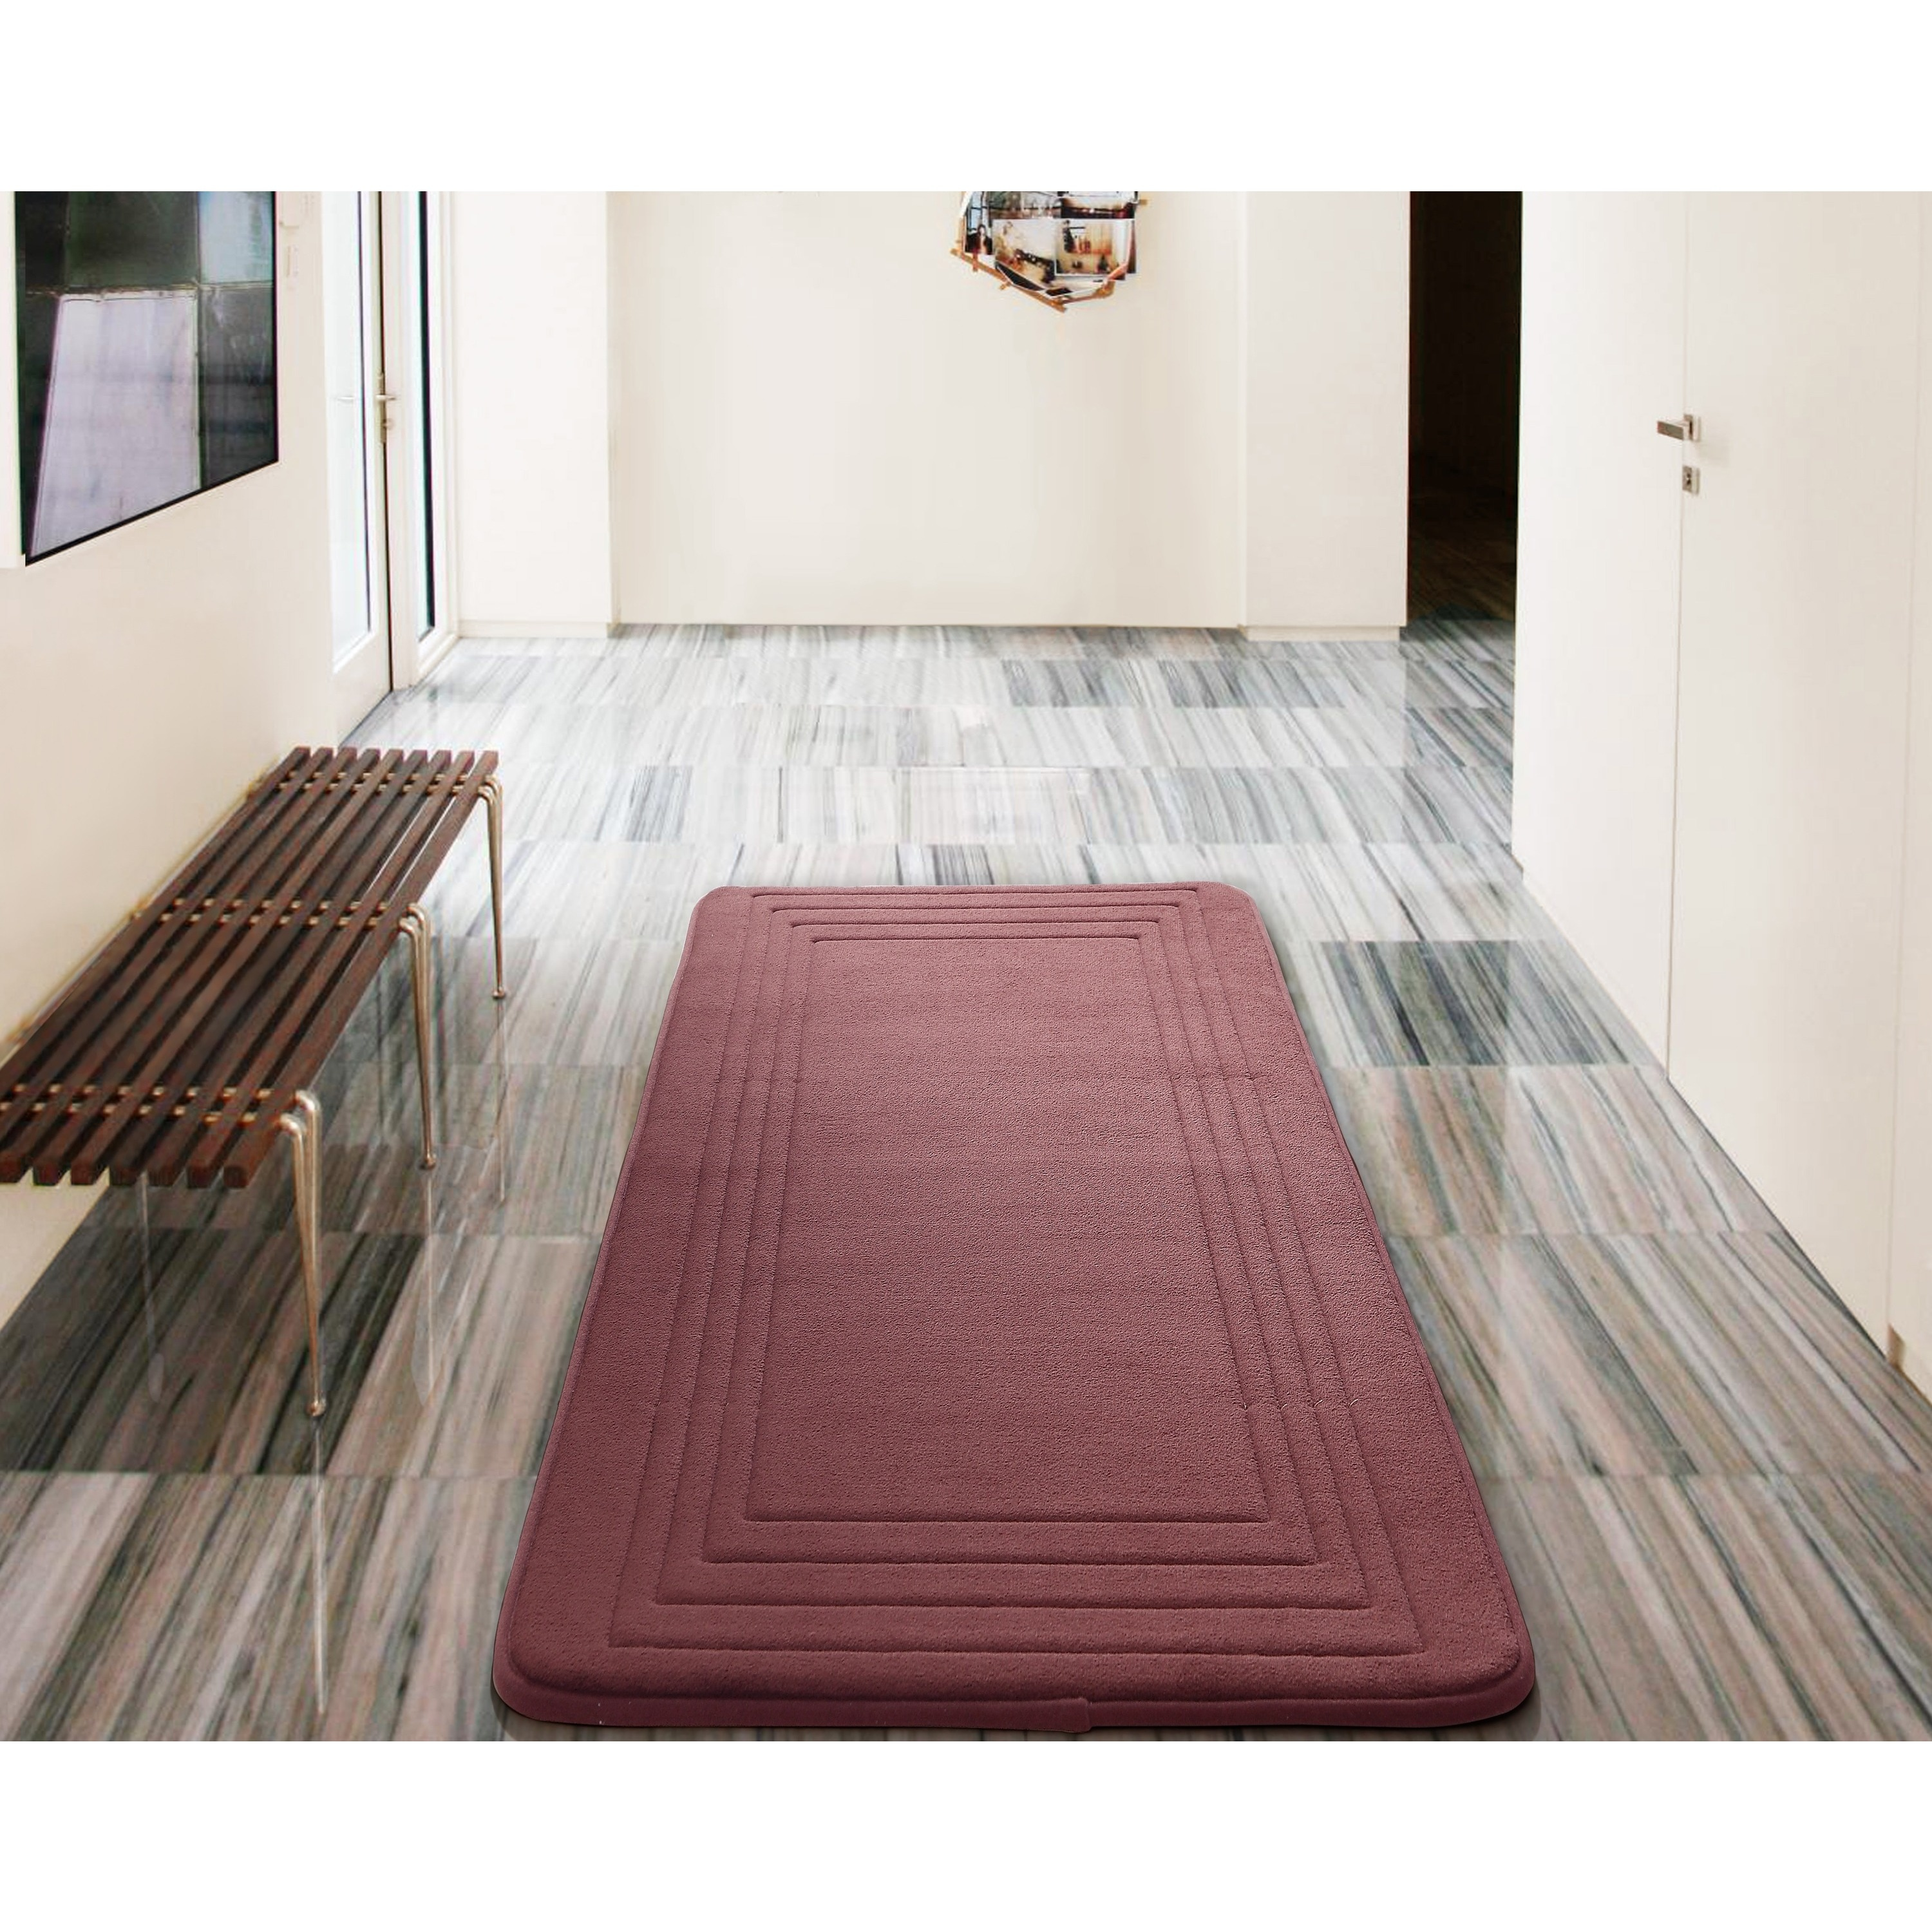 Extra Long Reversible Bath Rug Runner 2 ft Bathroom Mat Cotton Taupe x 5 ft